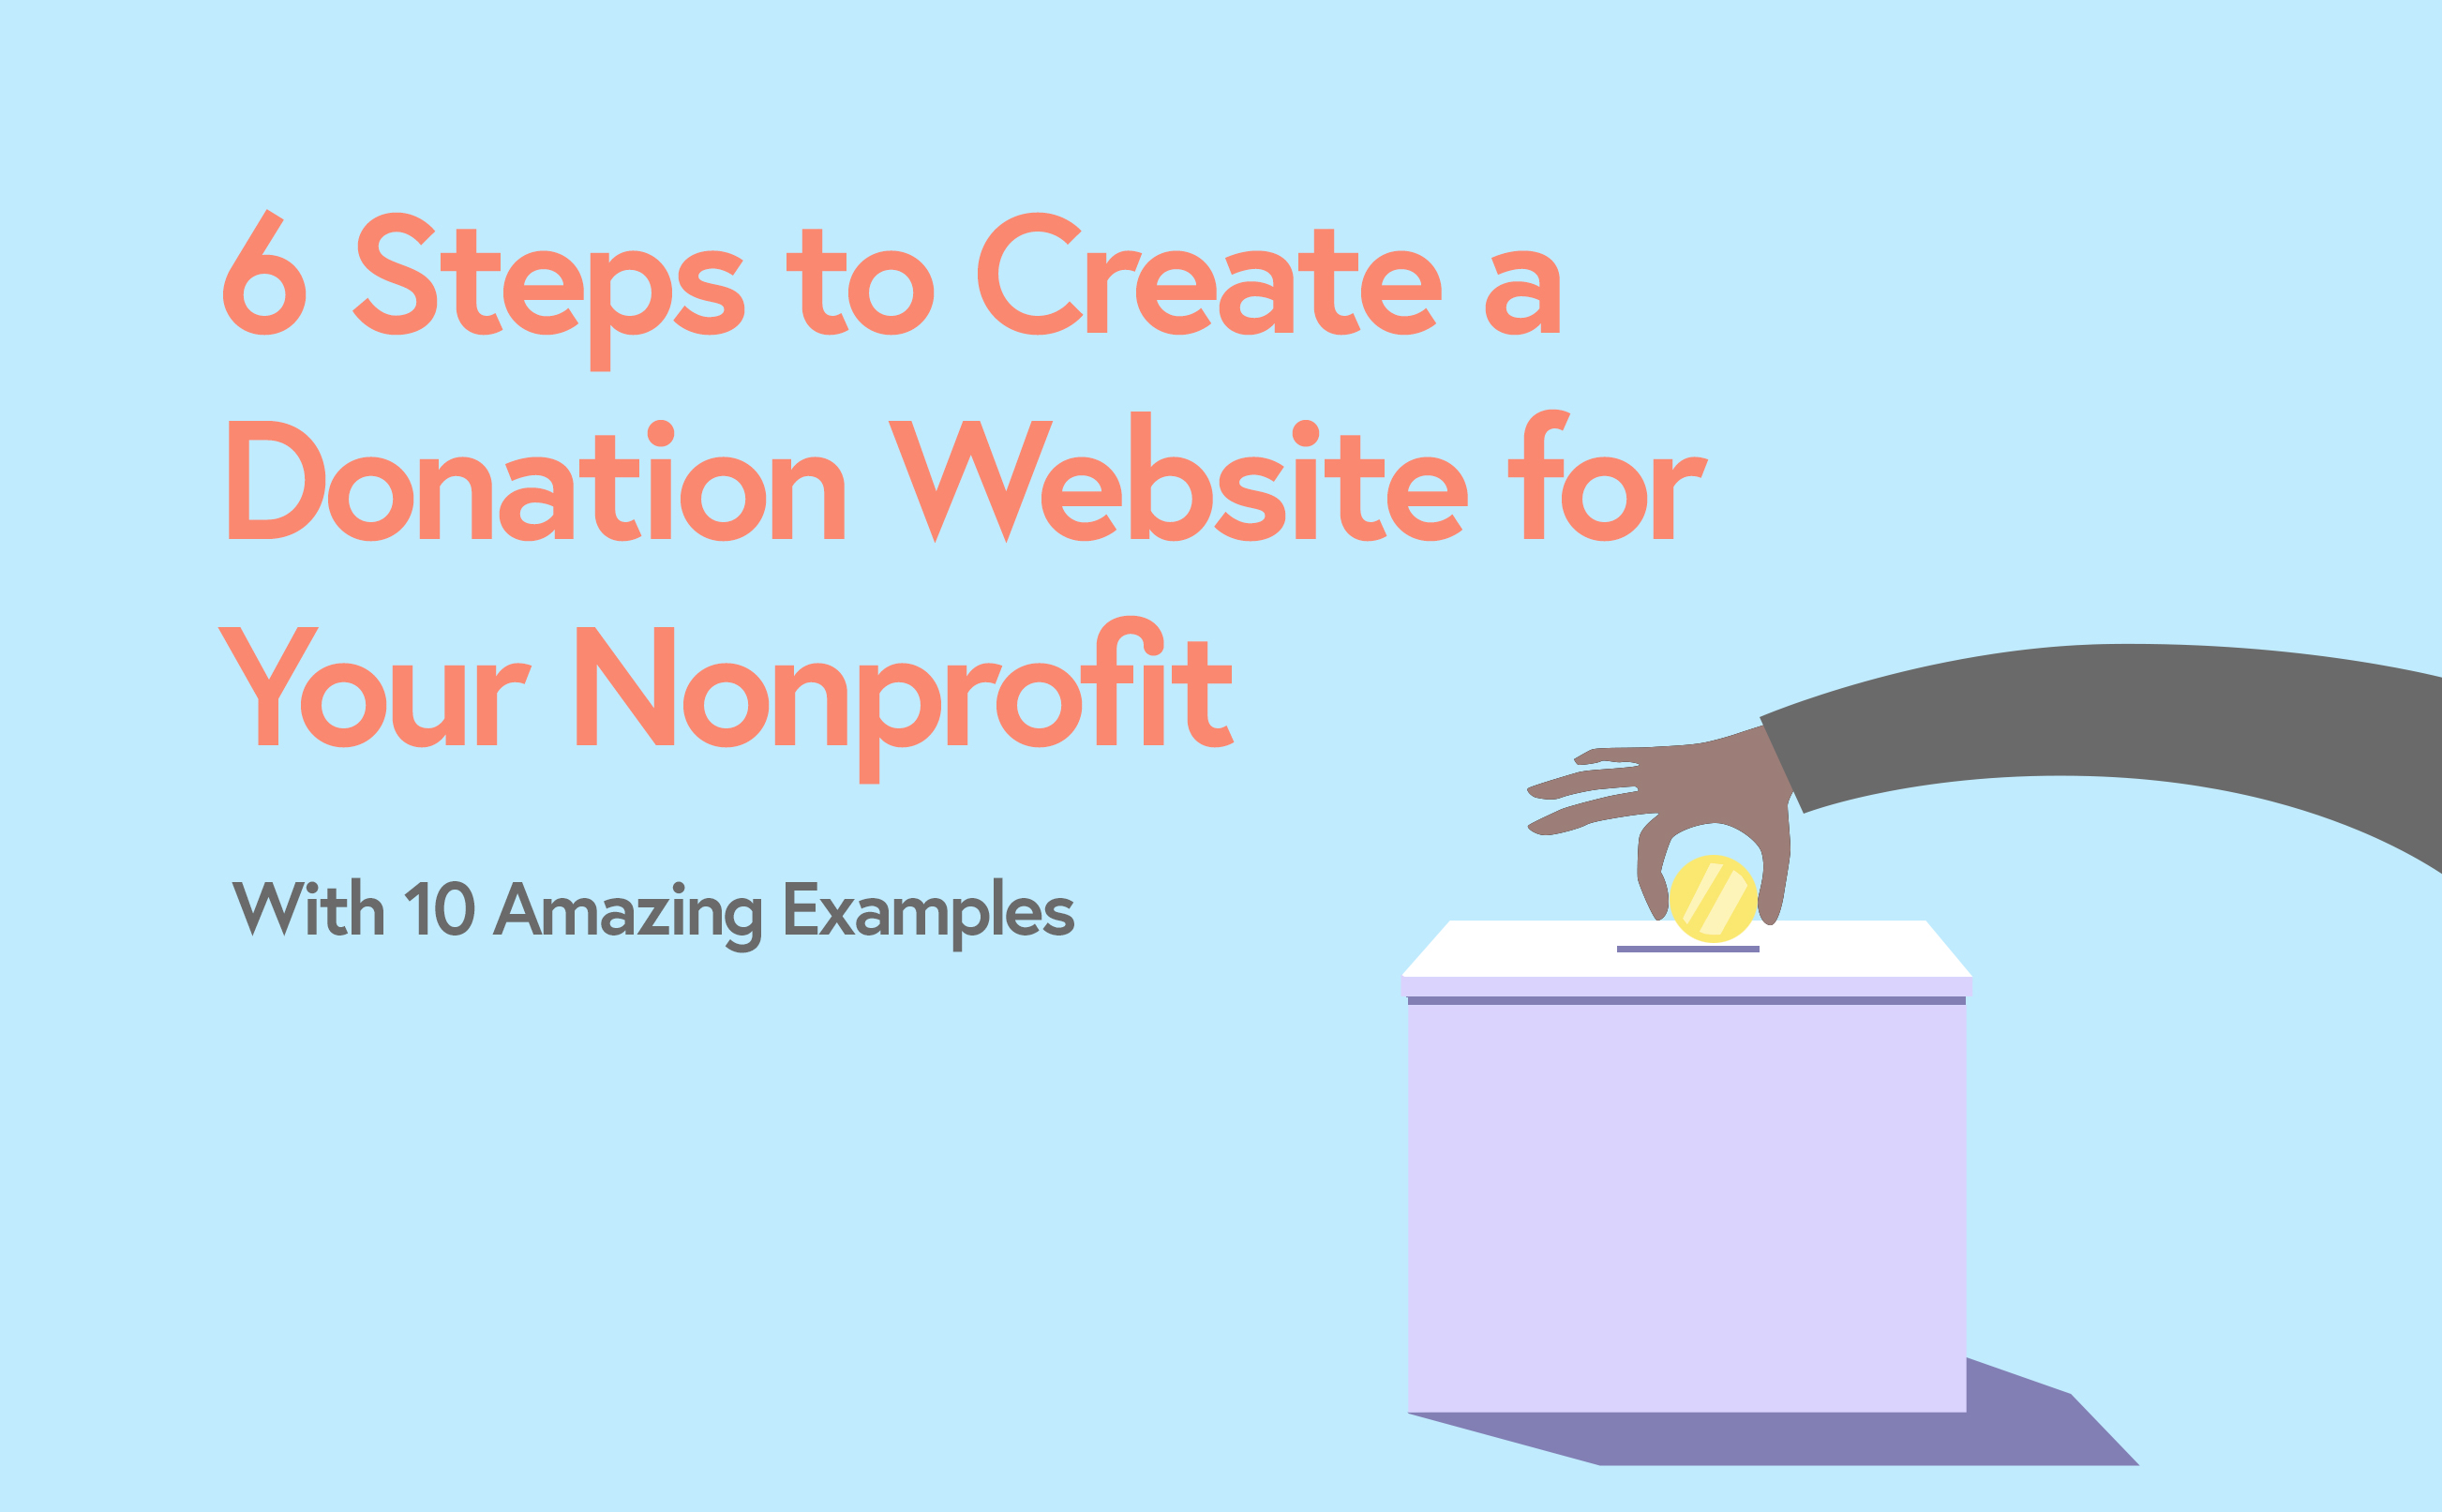 How to Create a Donation Website